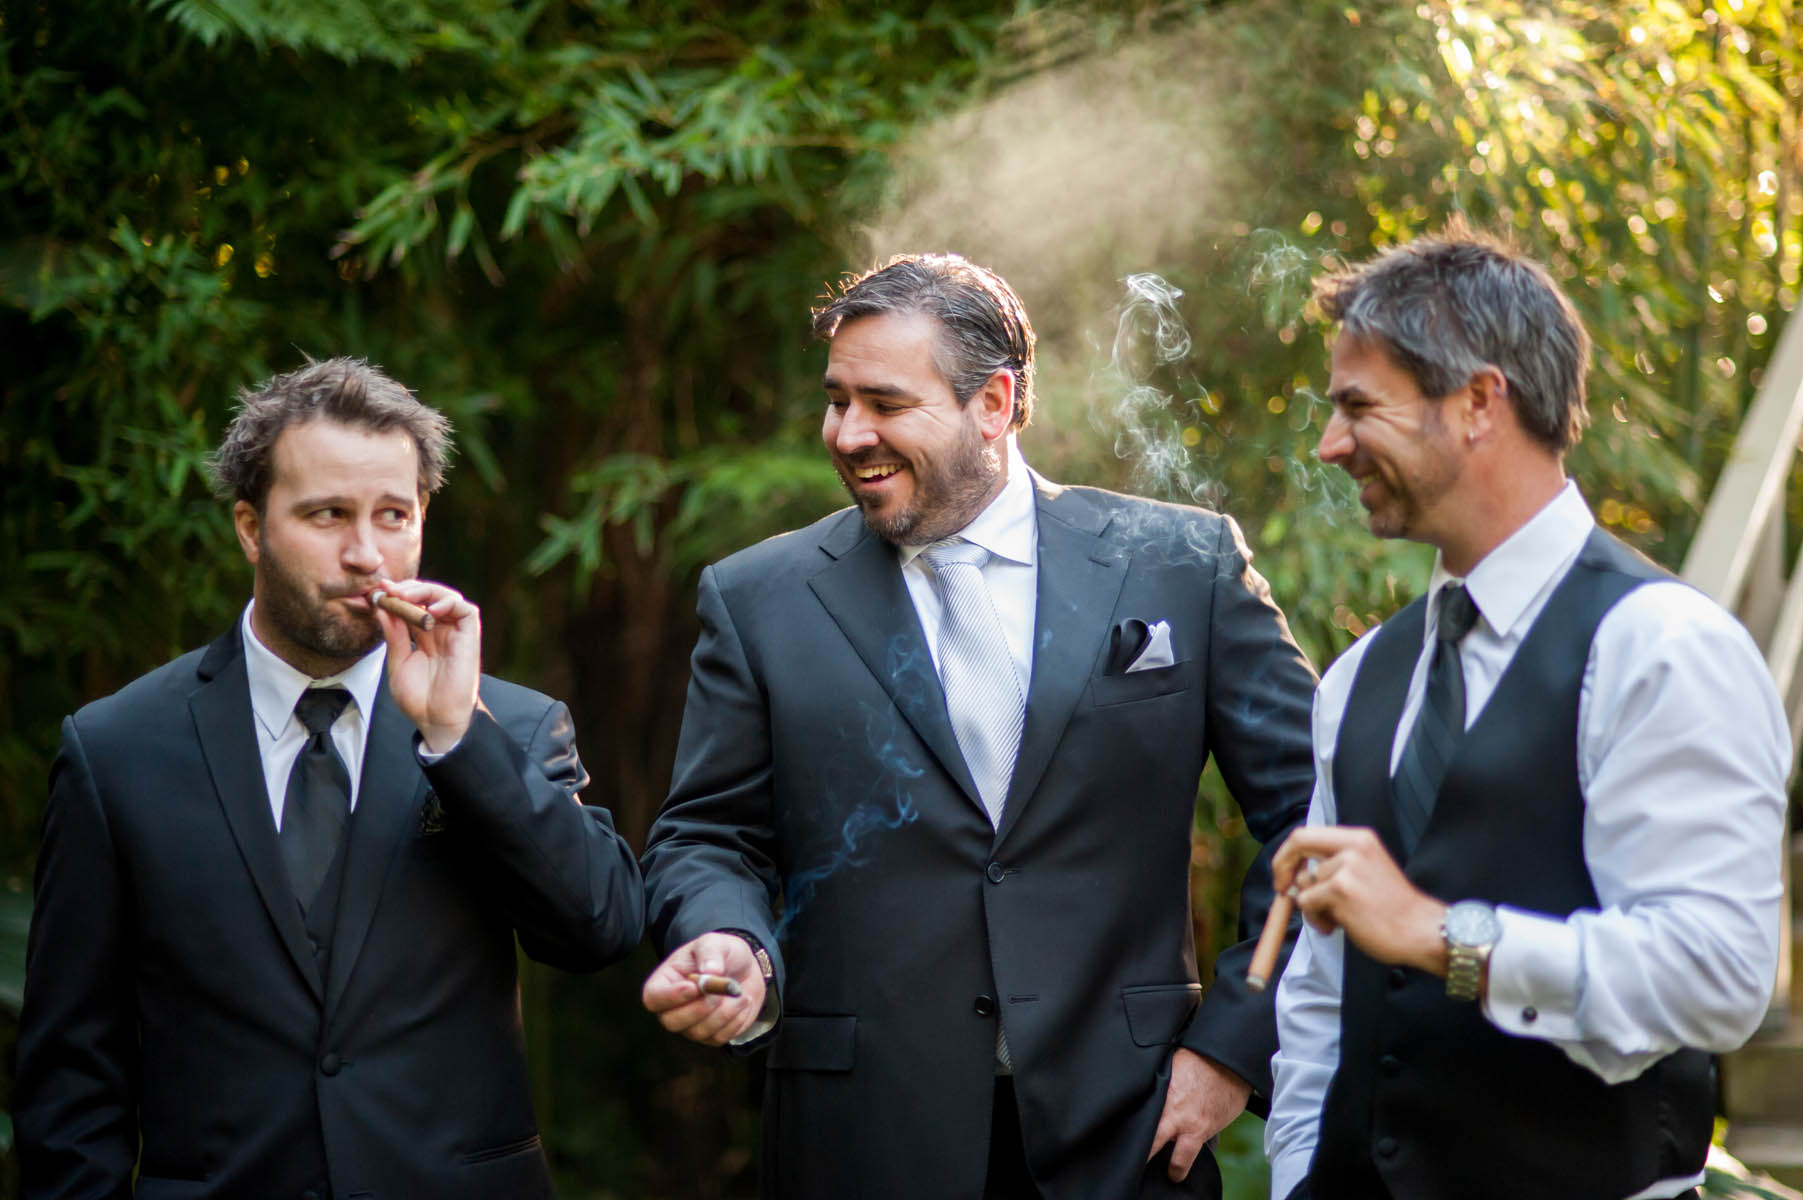 The groom enjoys a cigar with his best mates that have flown in from Austrailia for this wedding at La Venta in Palos Verdes.